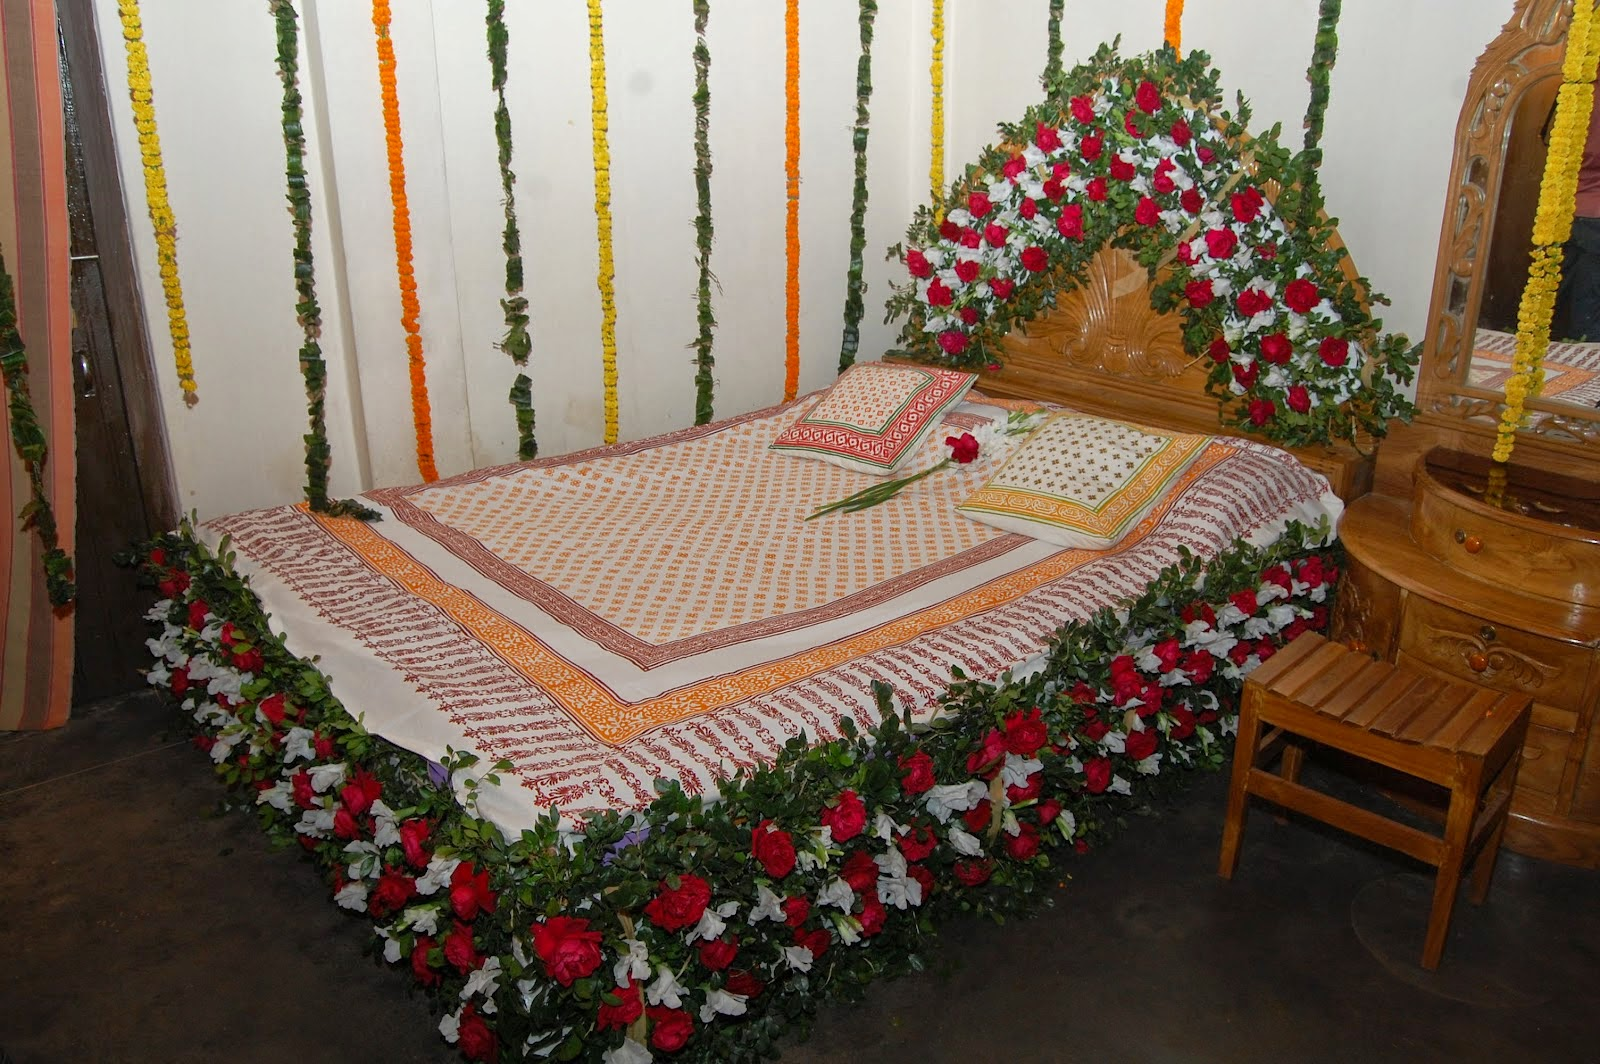 Bedroom decorating ideas for wedding night - Bangladeshi Wedding Bed